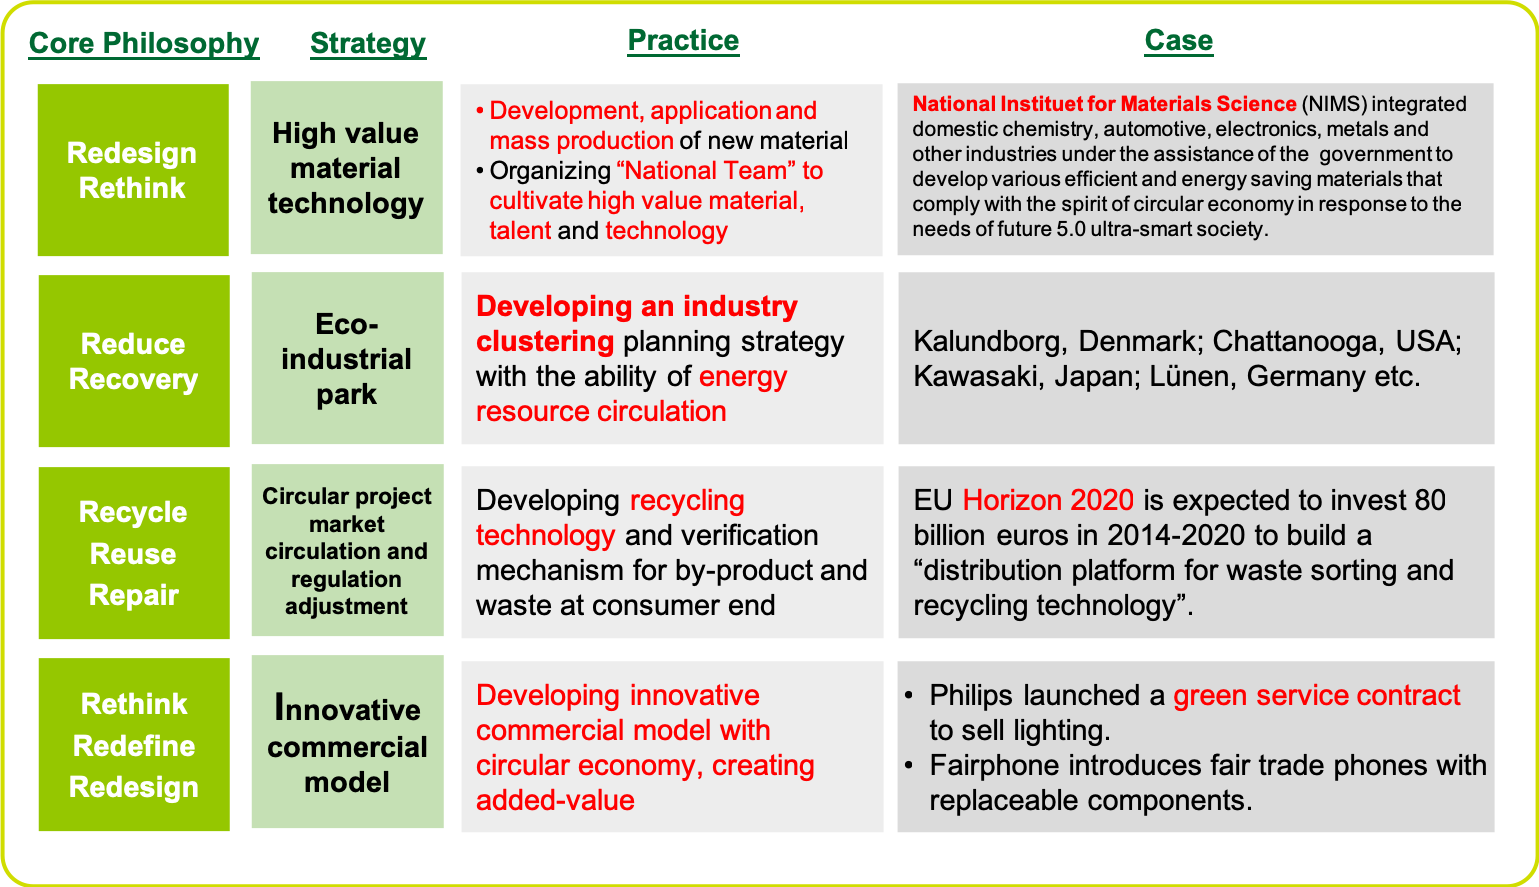 Major Strategic Practices for the Development of Circular Economy in Countries Around the World